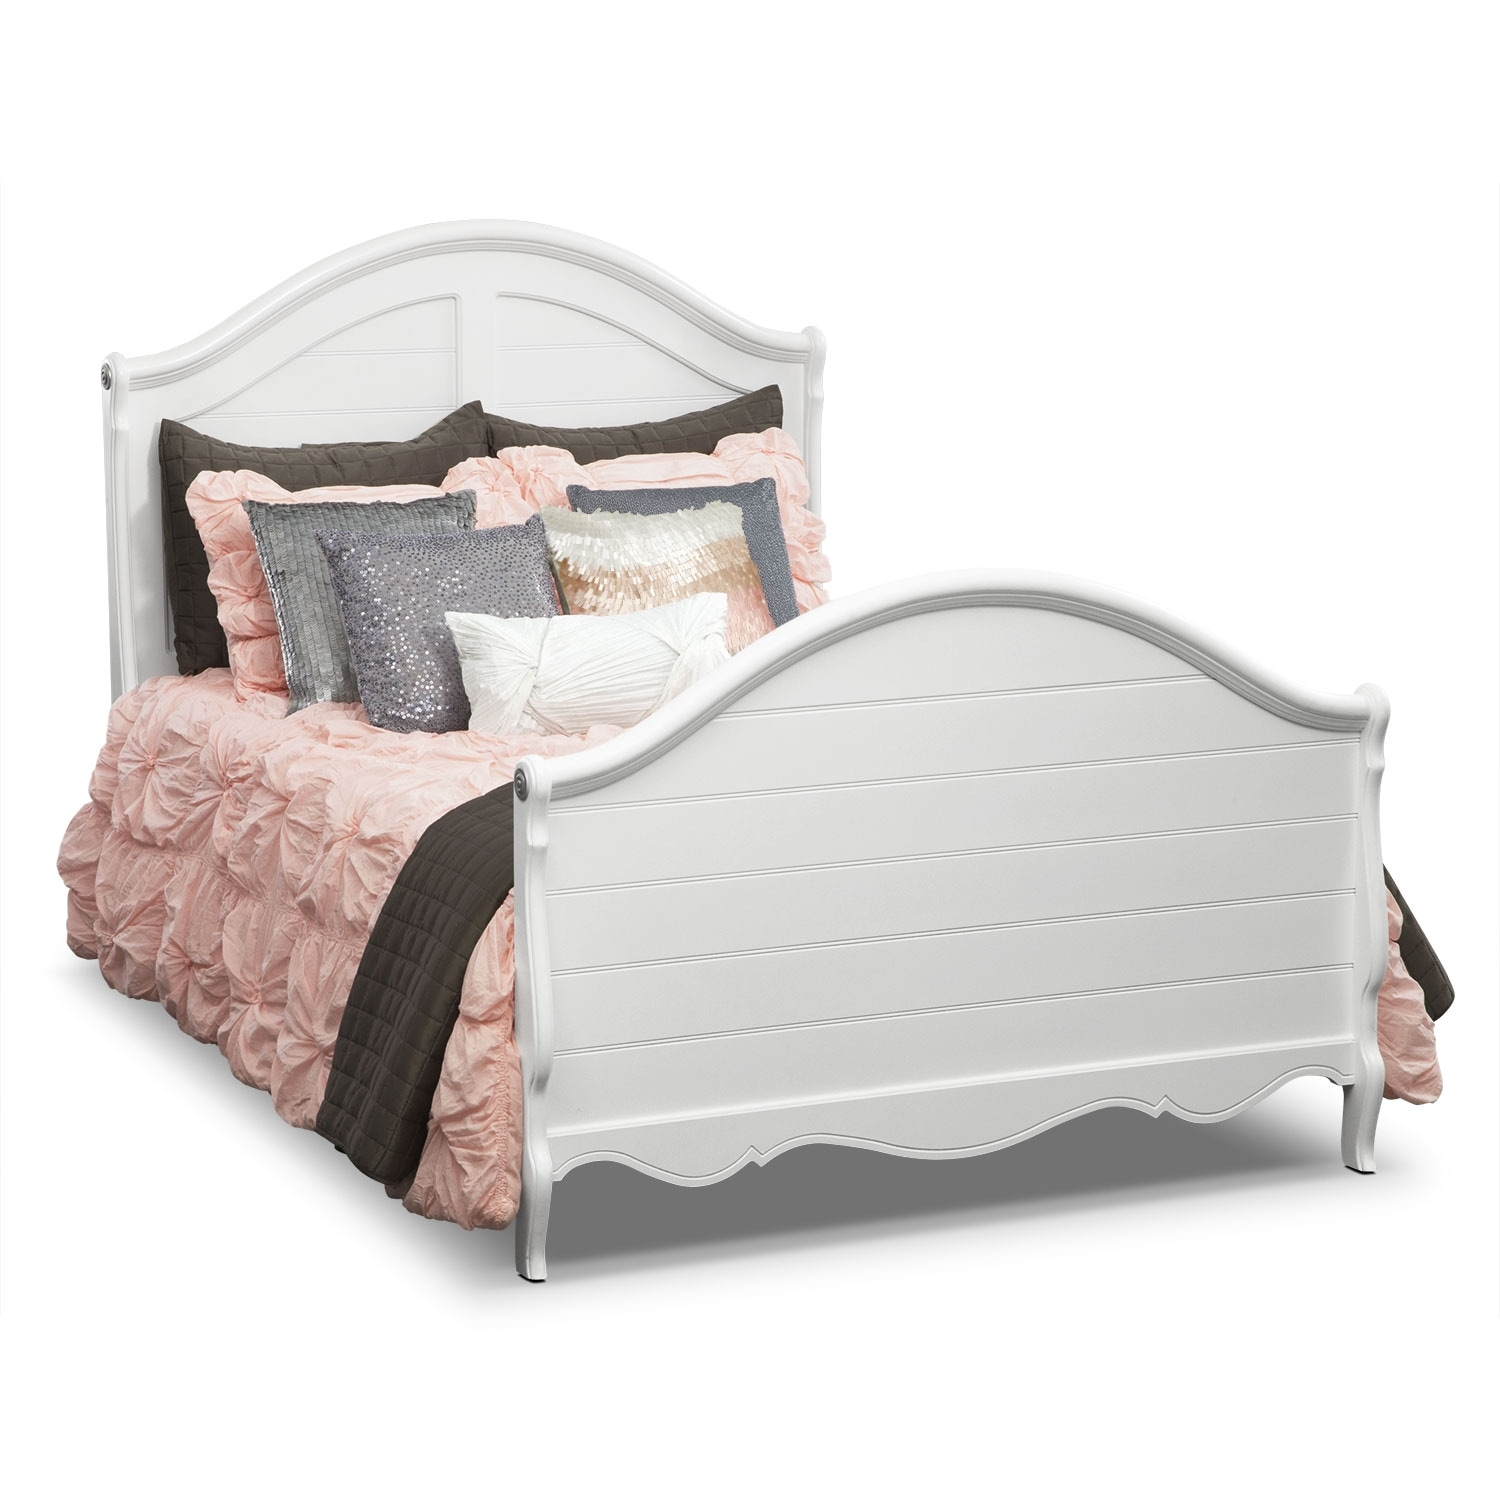 Accent and Occasional Furniture - Good Dream Twin Bedding Set